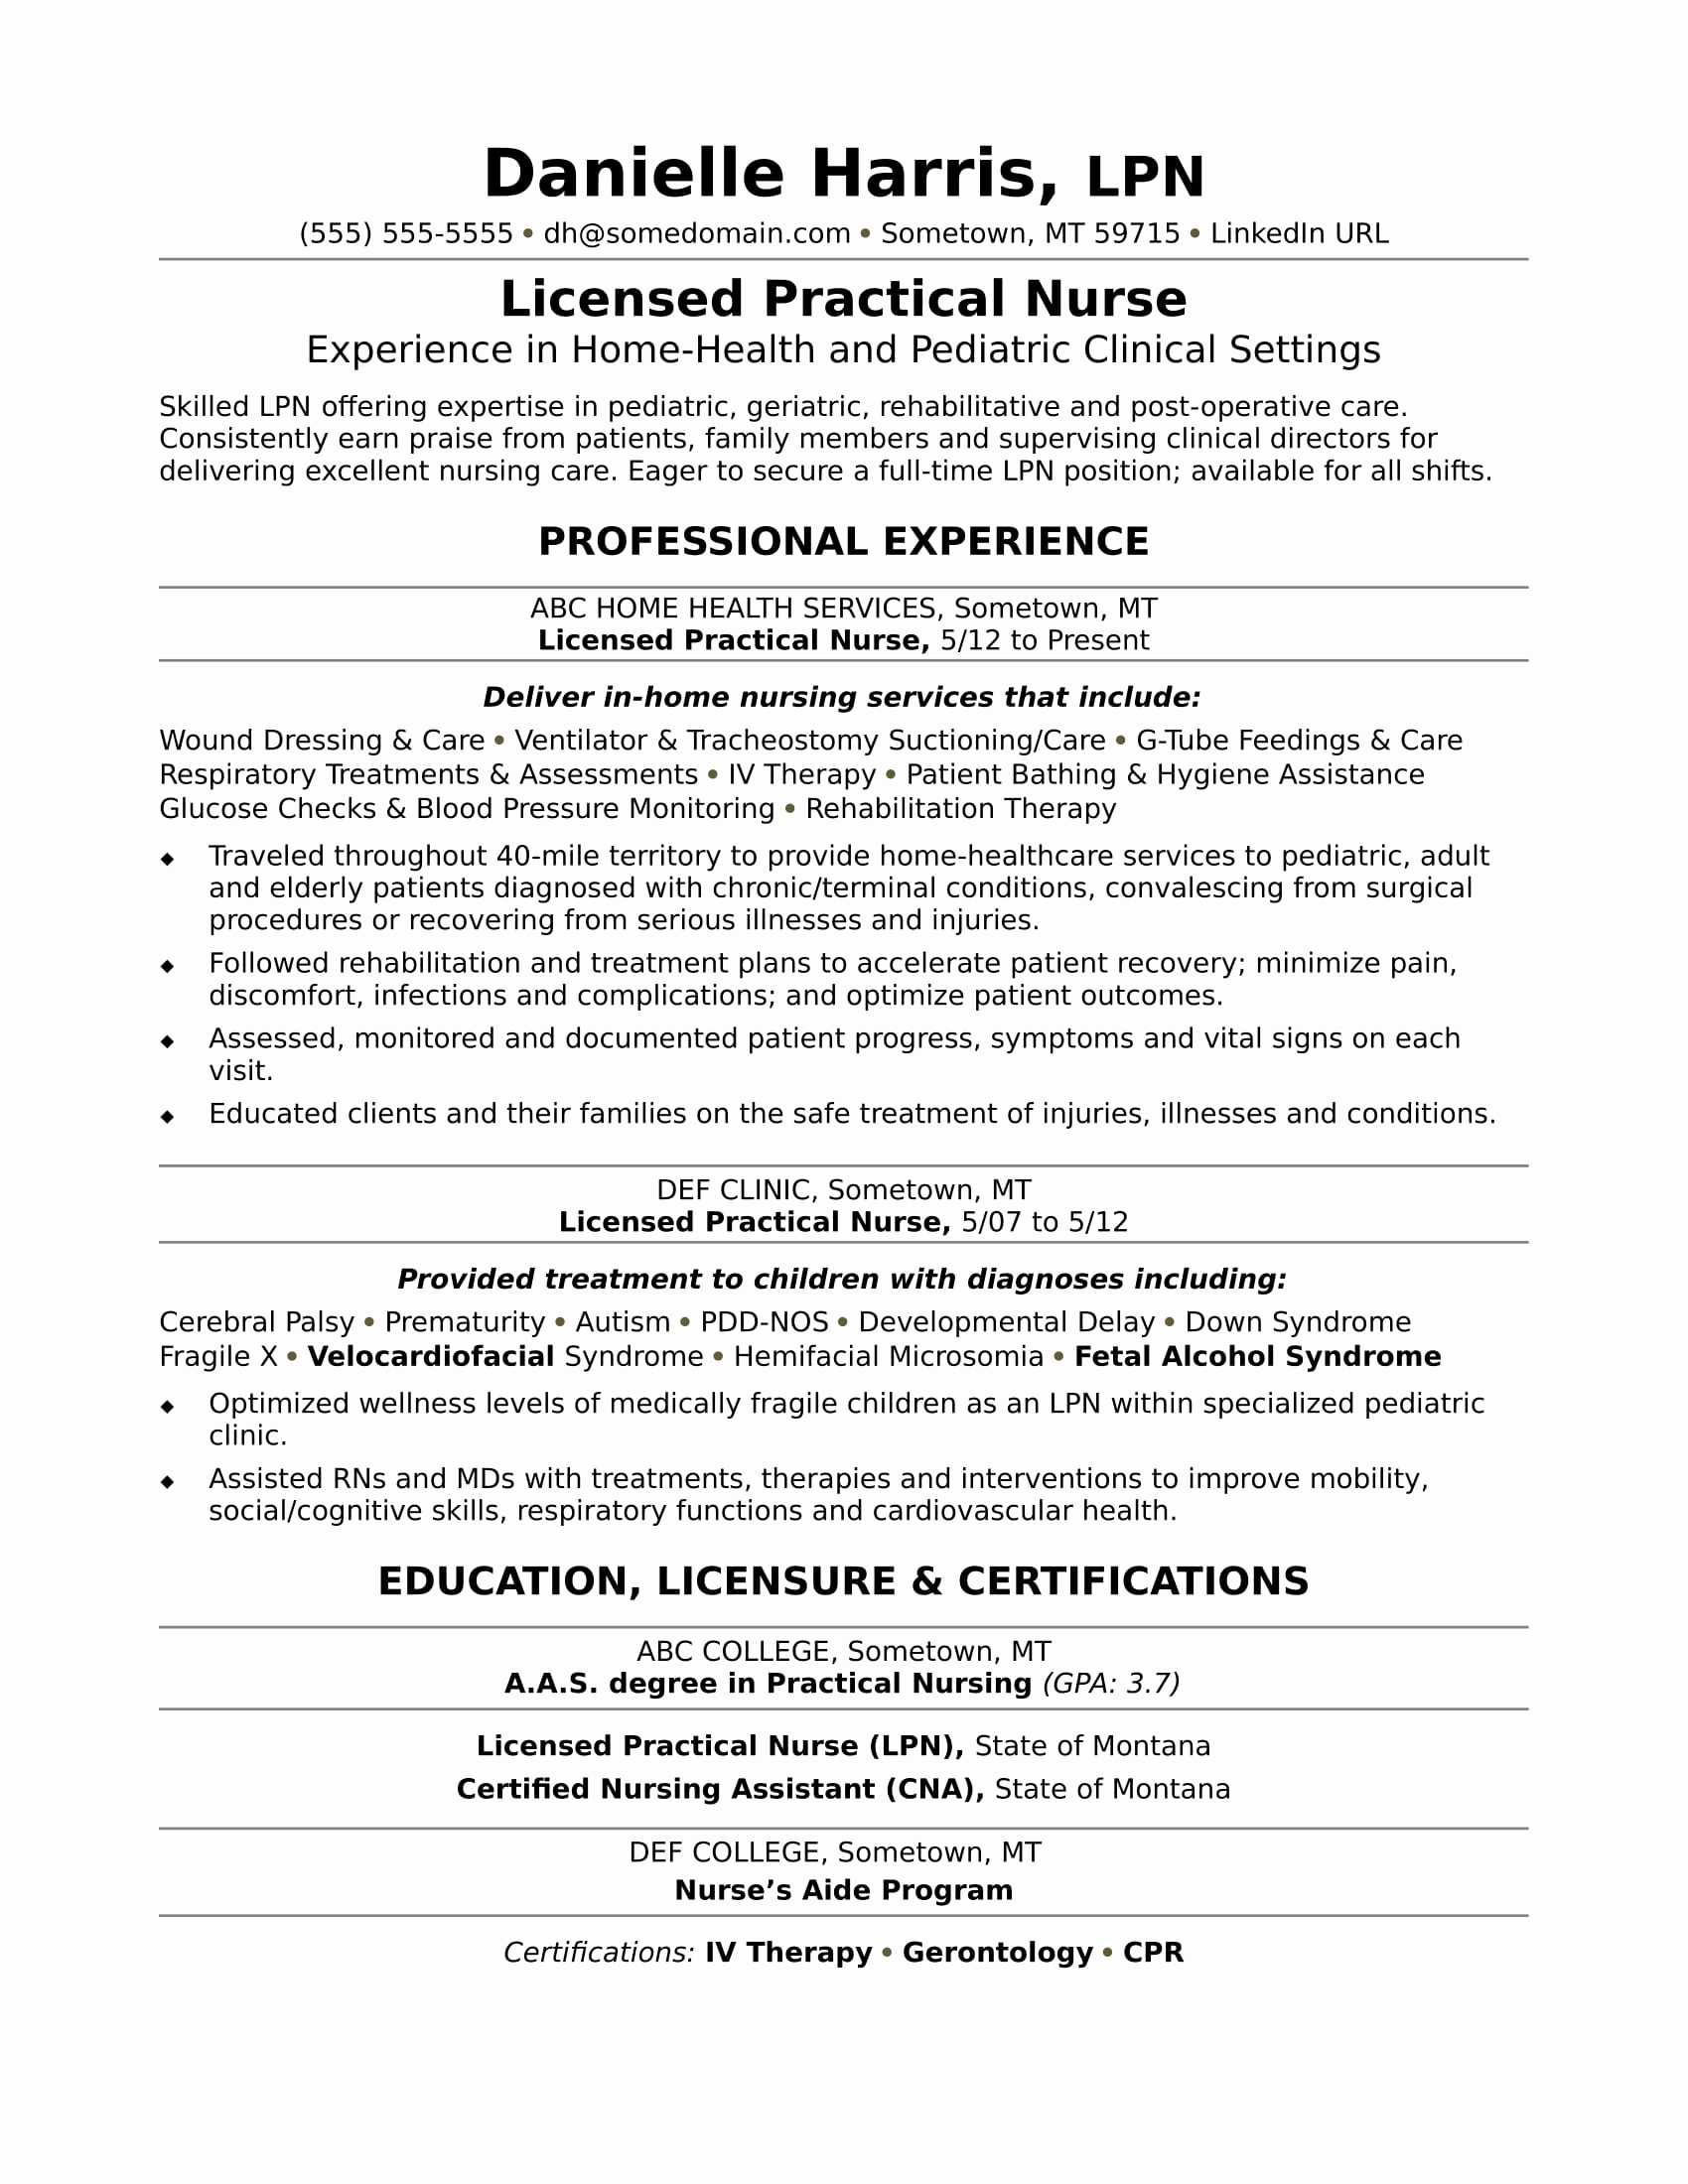 Nursing Student Resume Template Lovely Licensed Practical Nurse Resume Sample